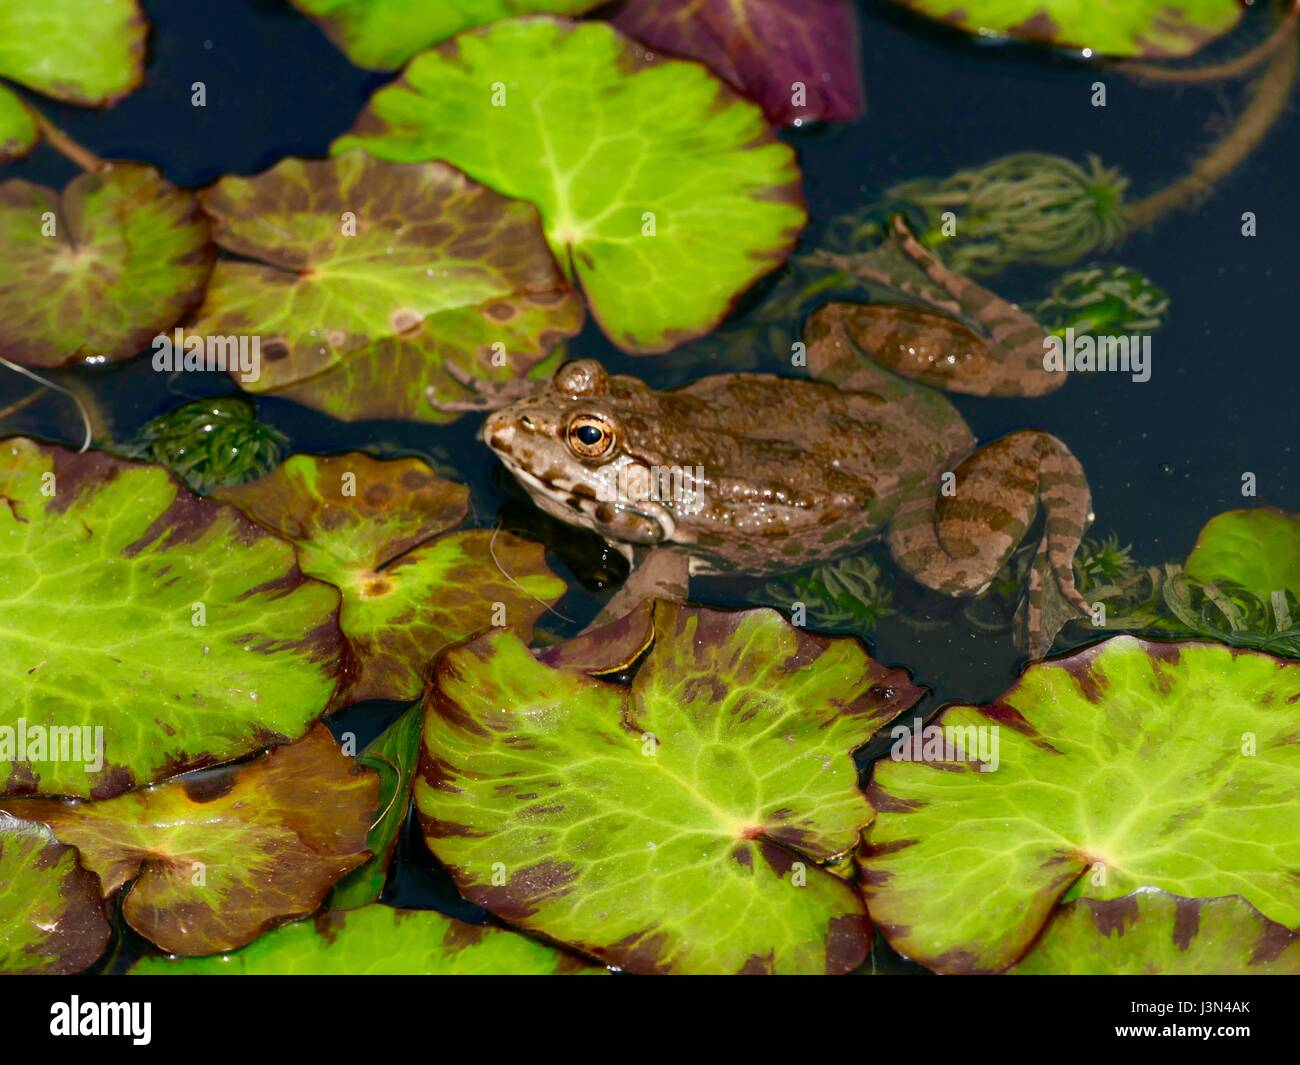 Brown colored European edible frog in a pond with green Lily Pads. Paris, France - Stock Image